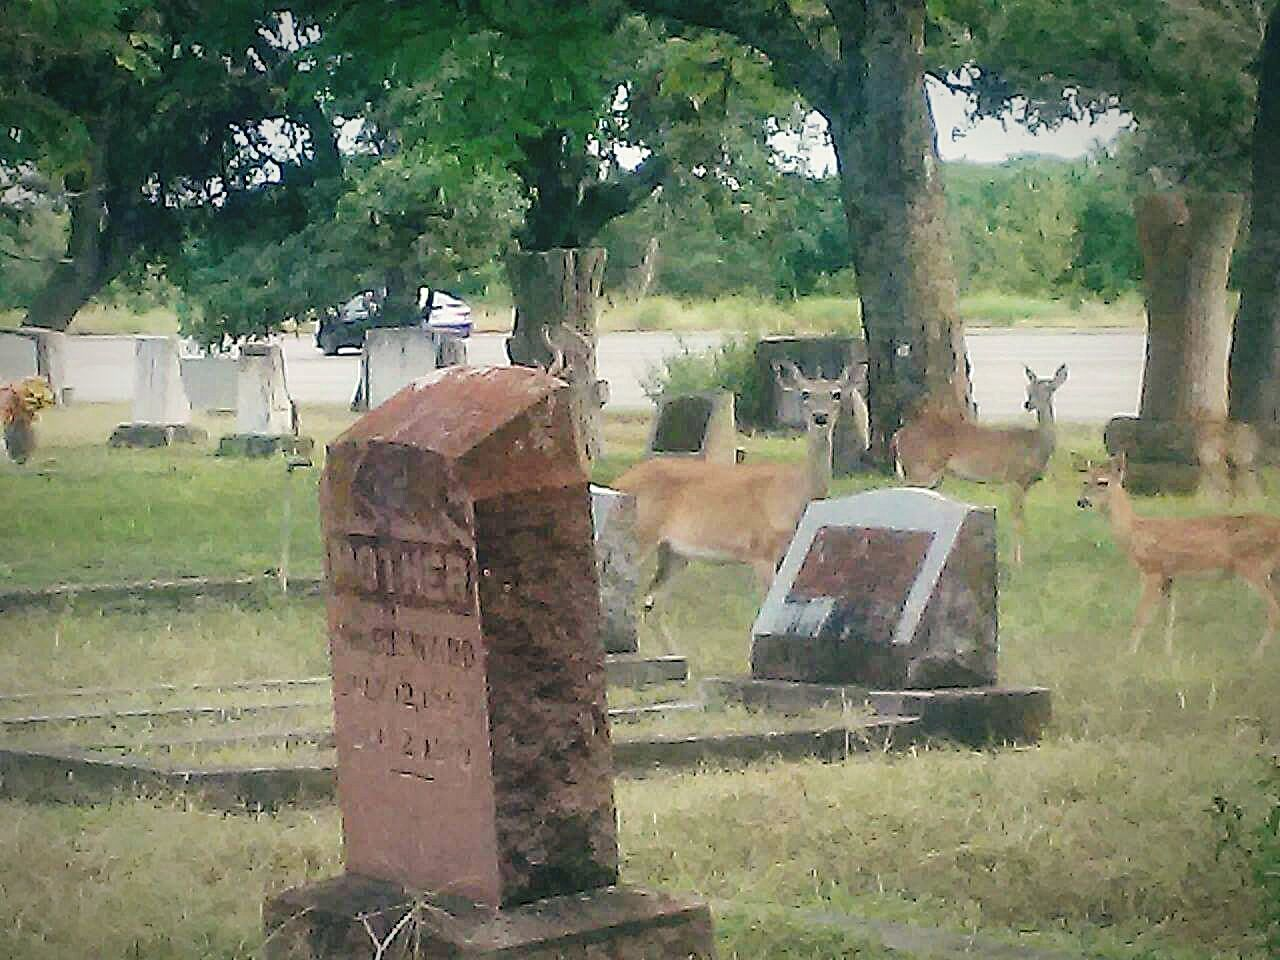 Graveyard Beauty Wildlife And Nature Deerhunter Deer ♥♥ Deer Hunting Animal Photography Hill Country Texas Deer Sighting Deersighting Fawn Deerseason Wildlife Photography Graveyardbeauty Graveyard Beauty Hunting Life Deer Moments Wildlife Bambi Wildlife & Nature Deers Deer Deer In My Yard Deerhunting Hunting Photo